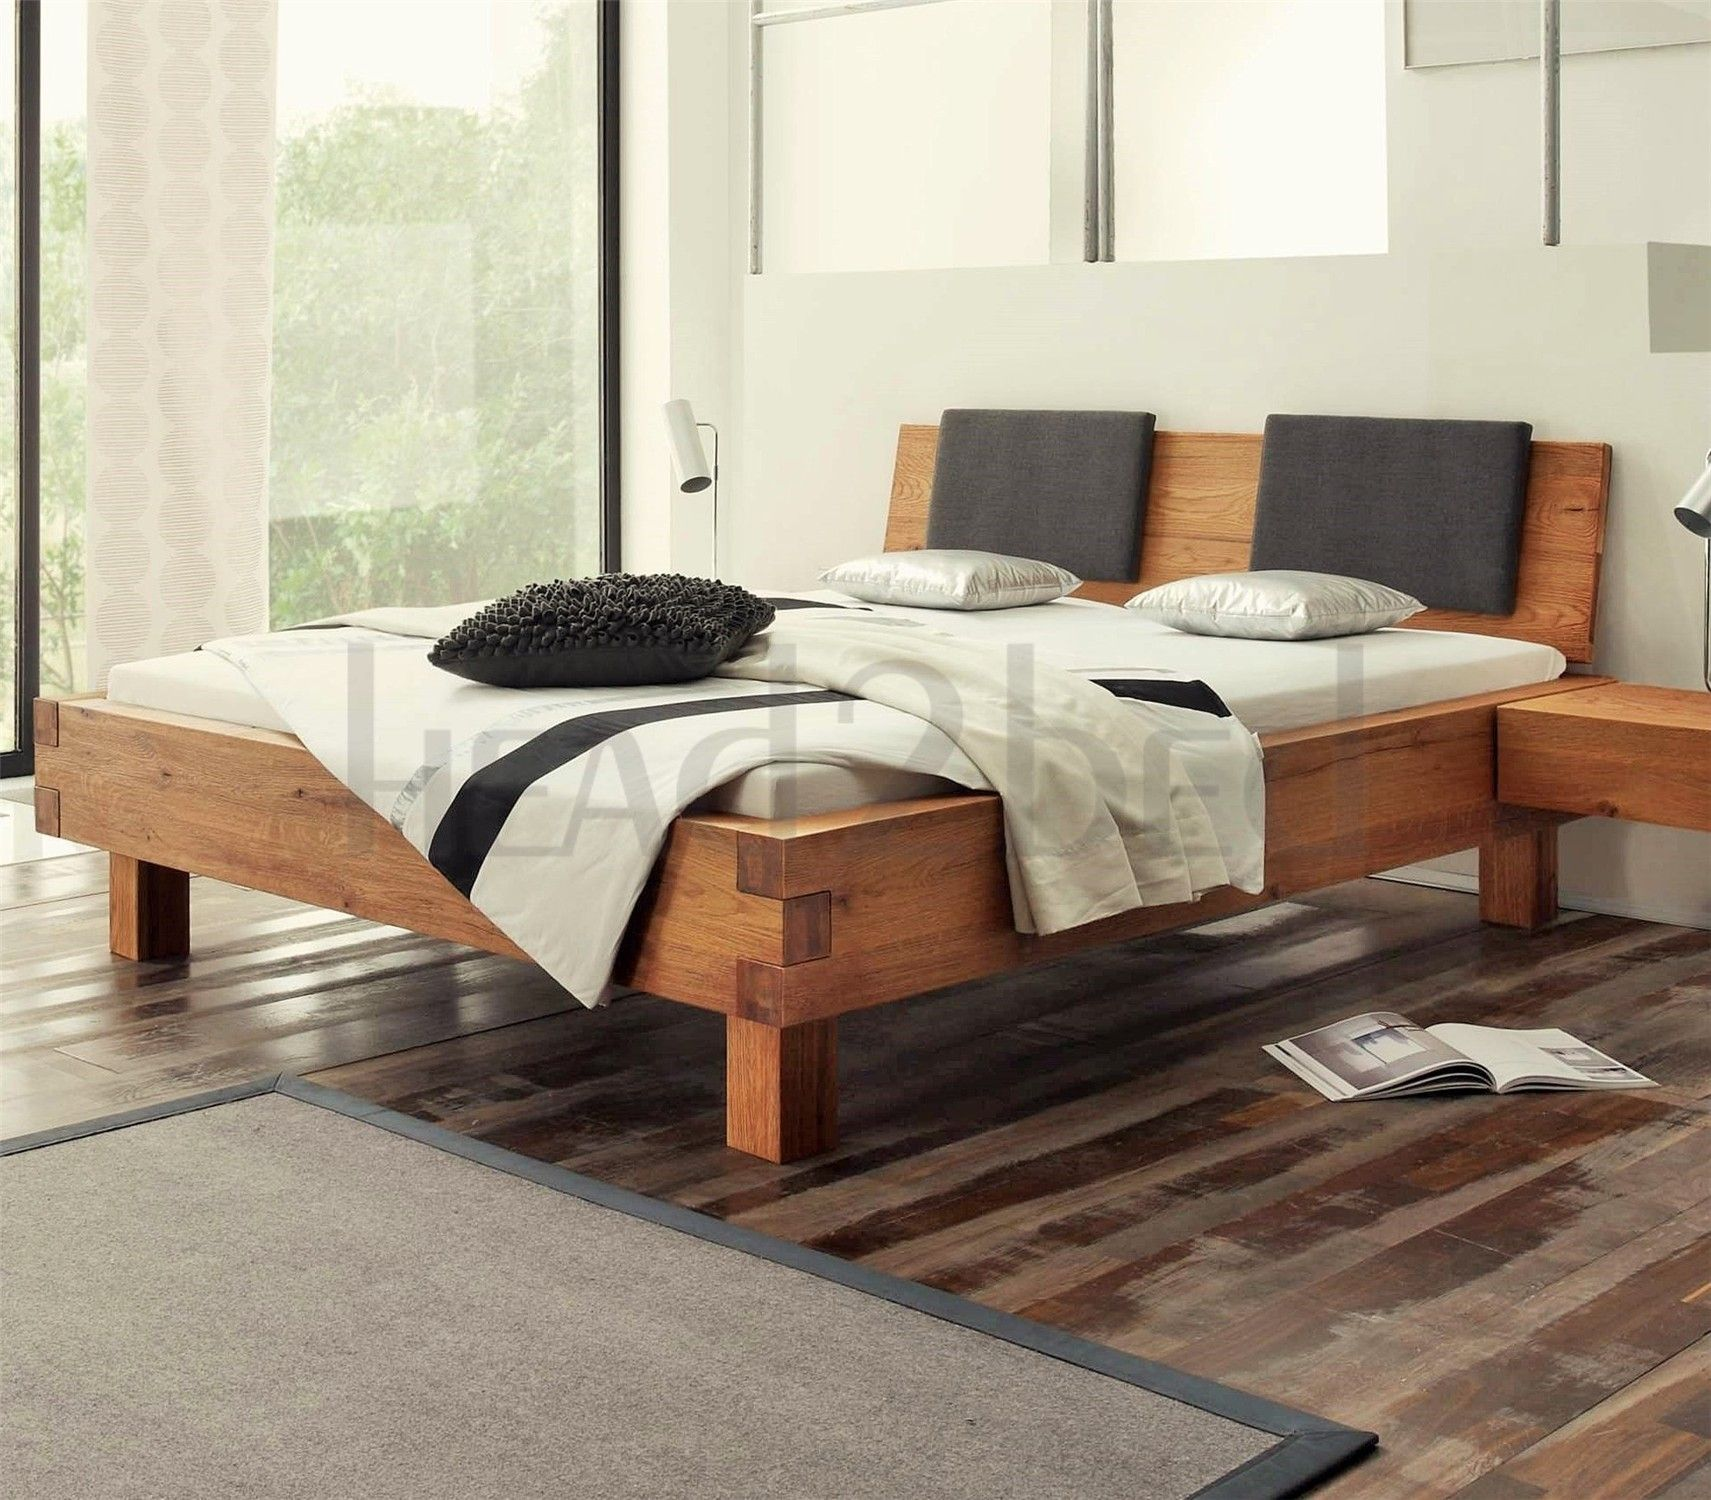 Hasena pilatus ivio sion character solid oak bed solid oak beds